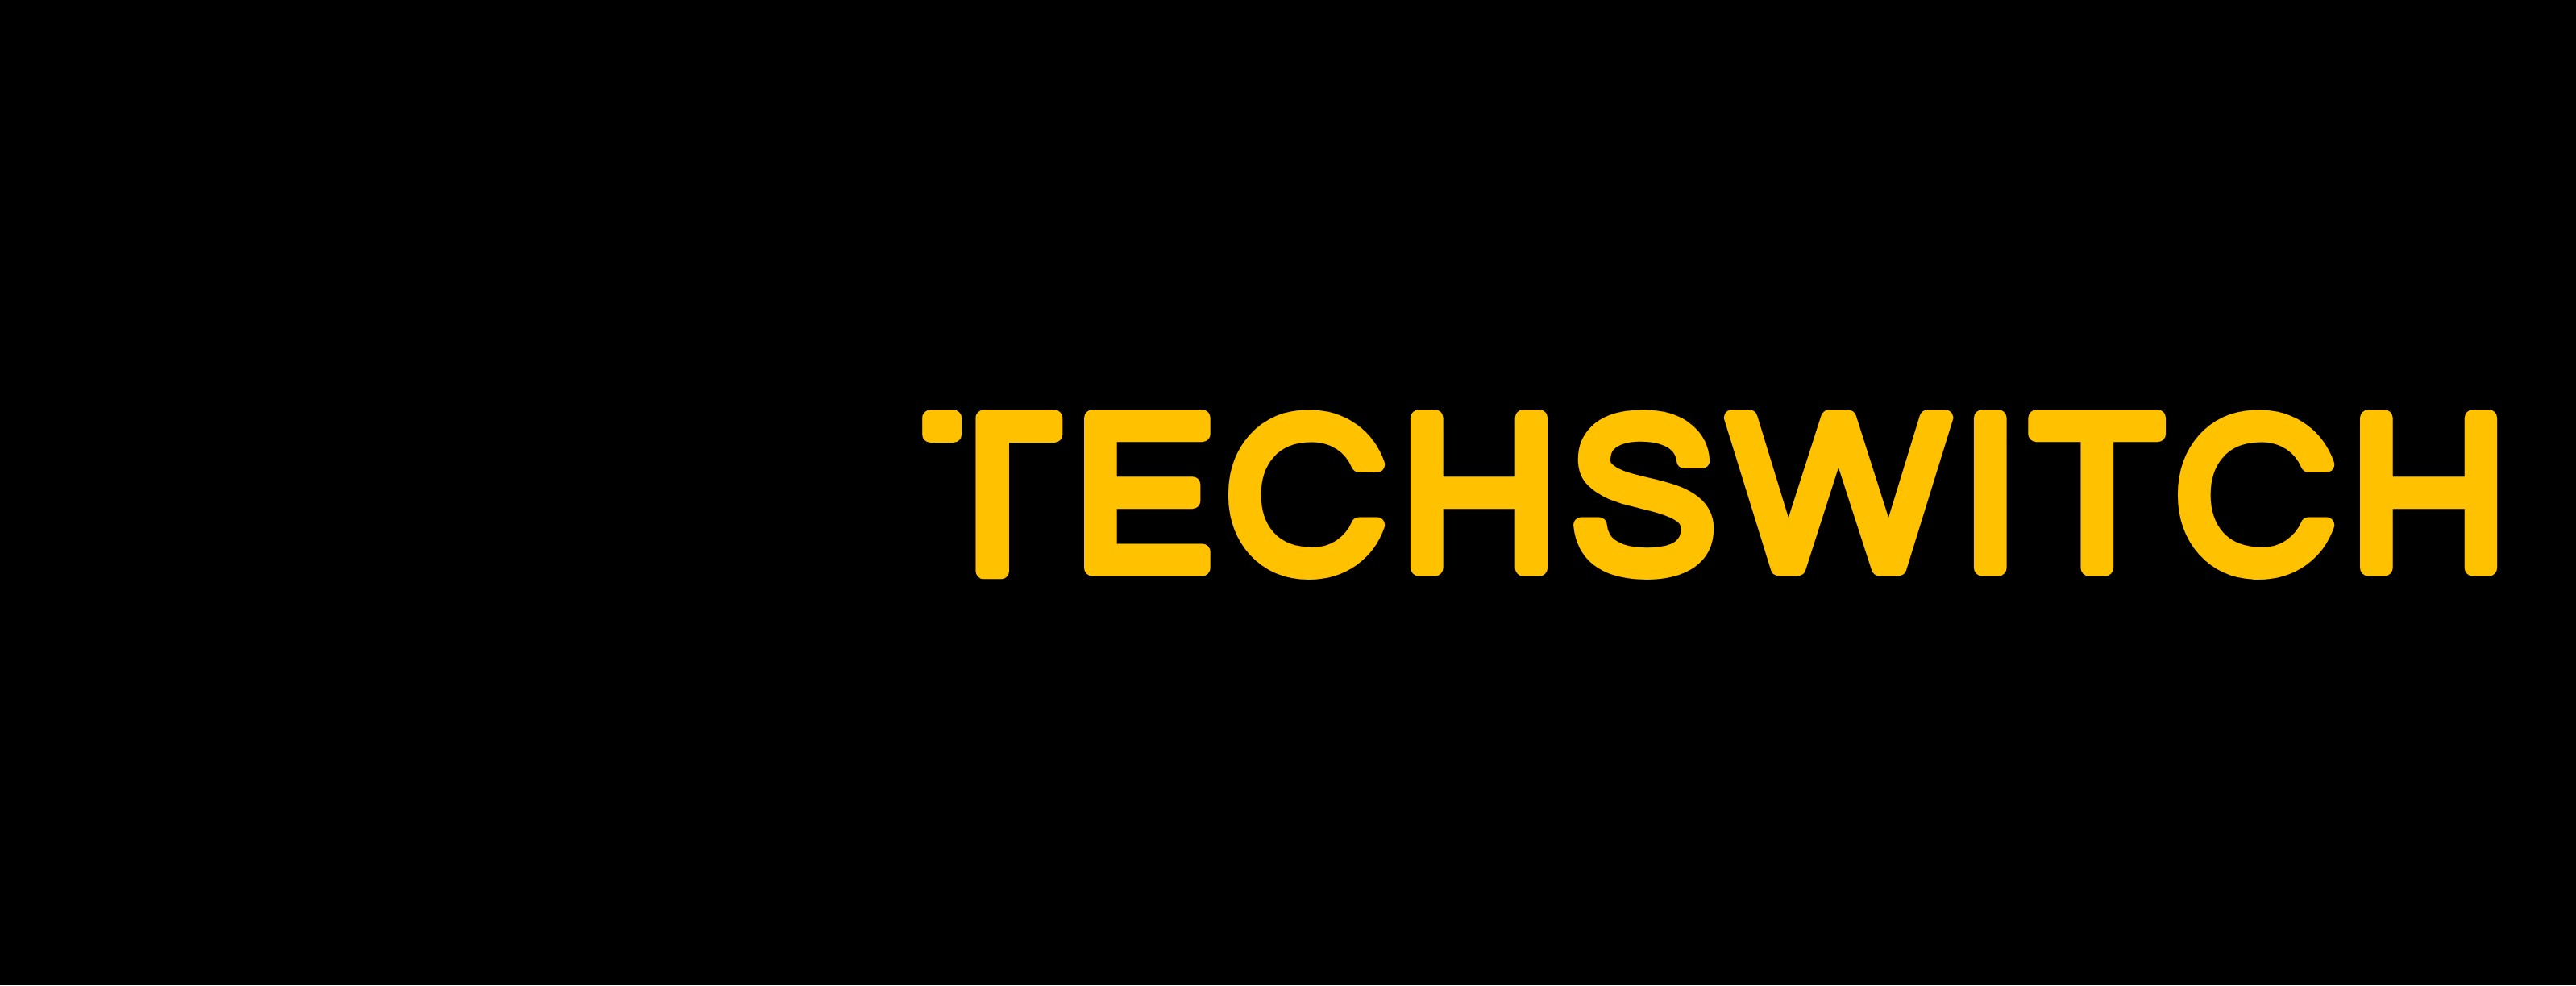 TechSwitch branded logo